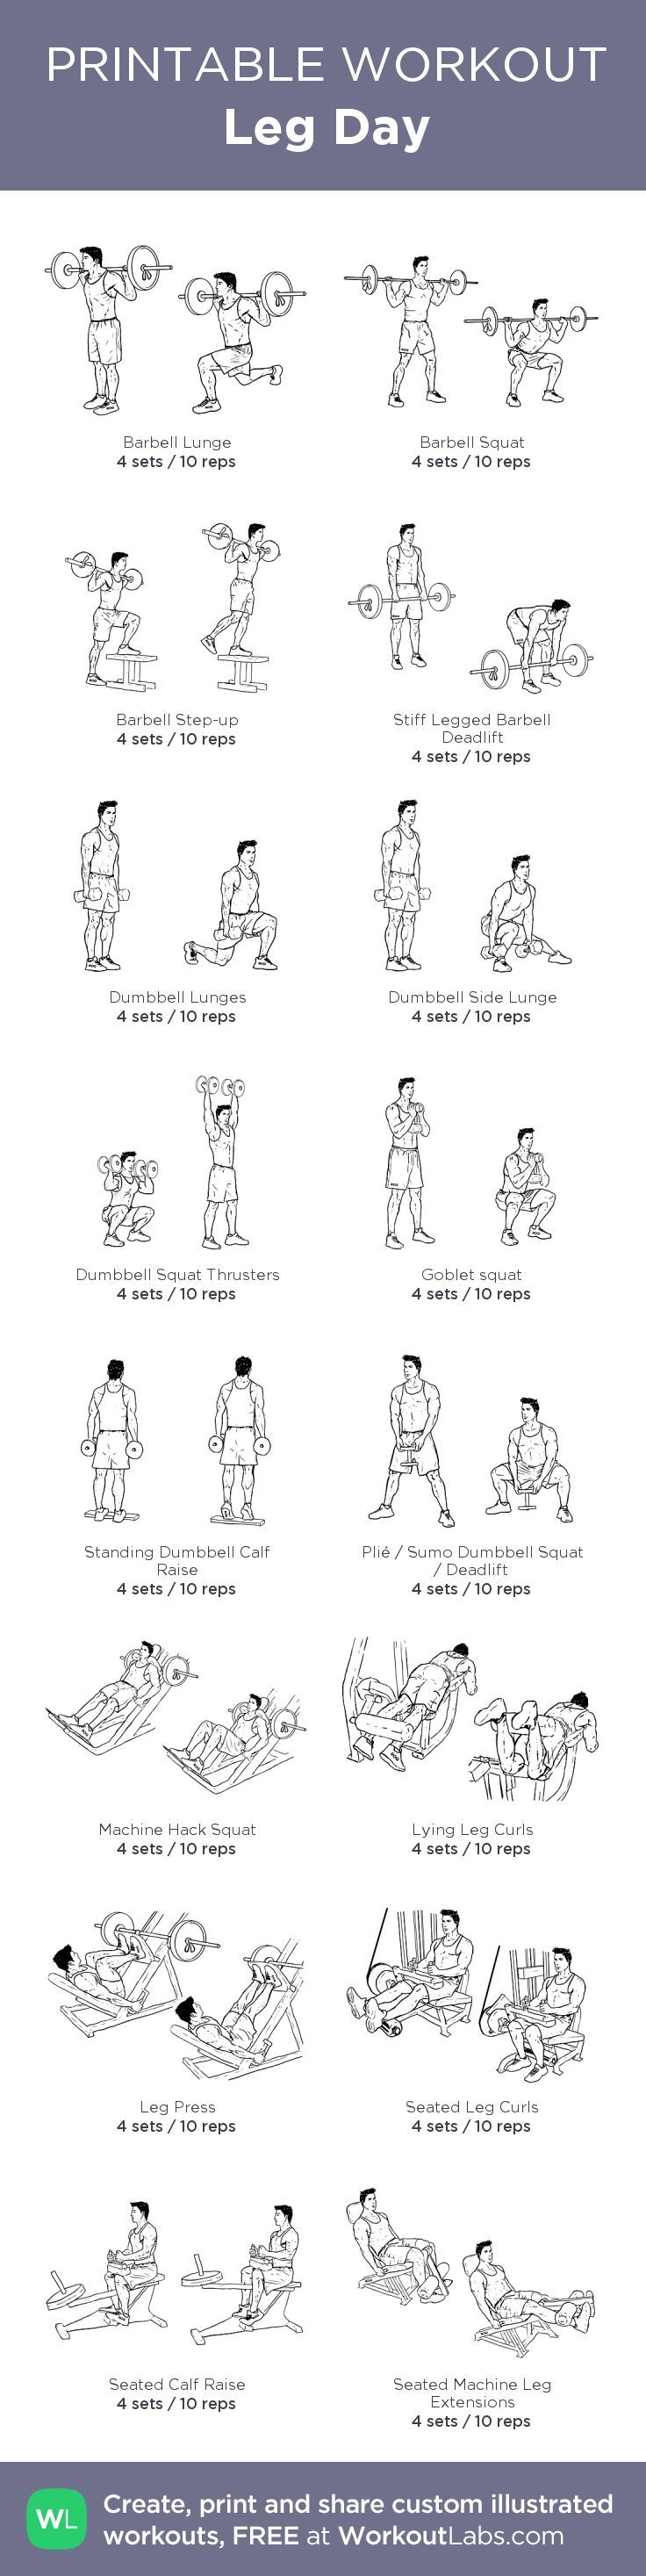 Leg Day: my custom printable workout by @WorkoutLabs #workoutlabs #customworkout: